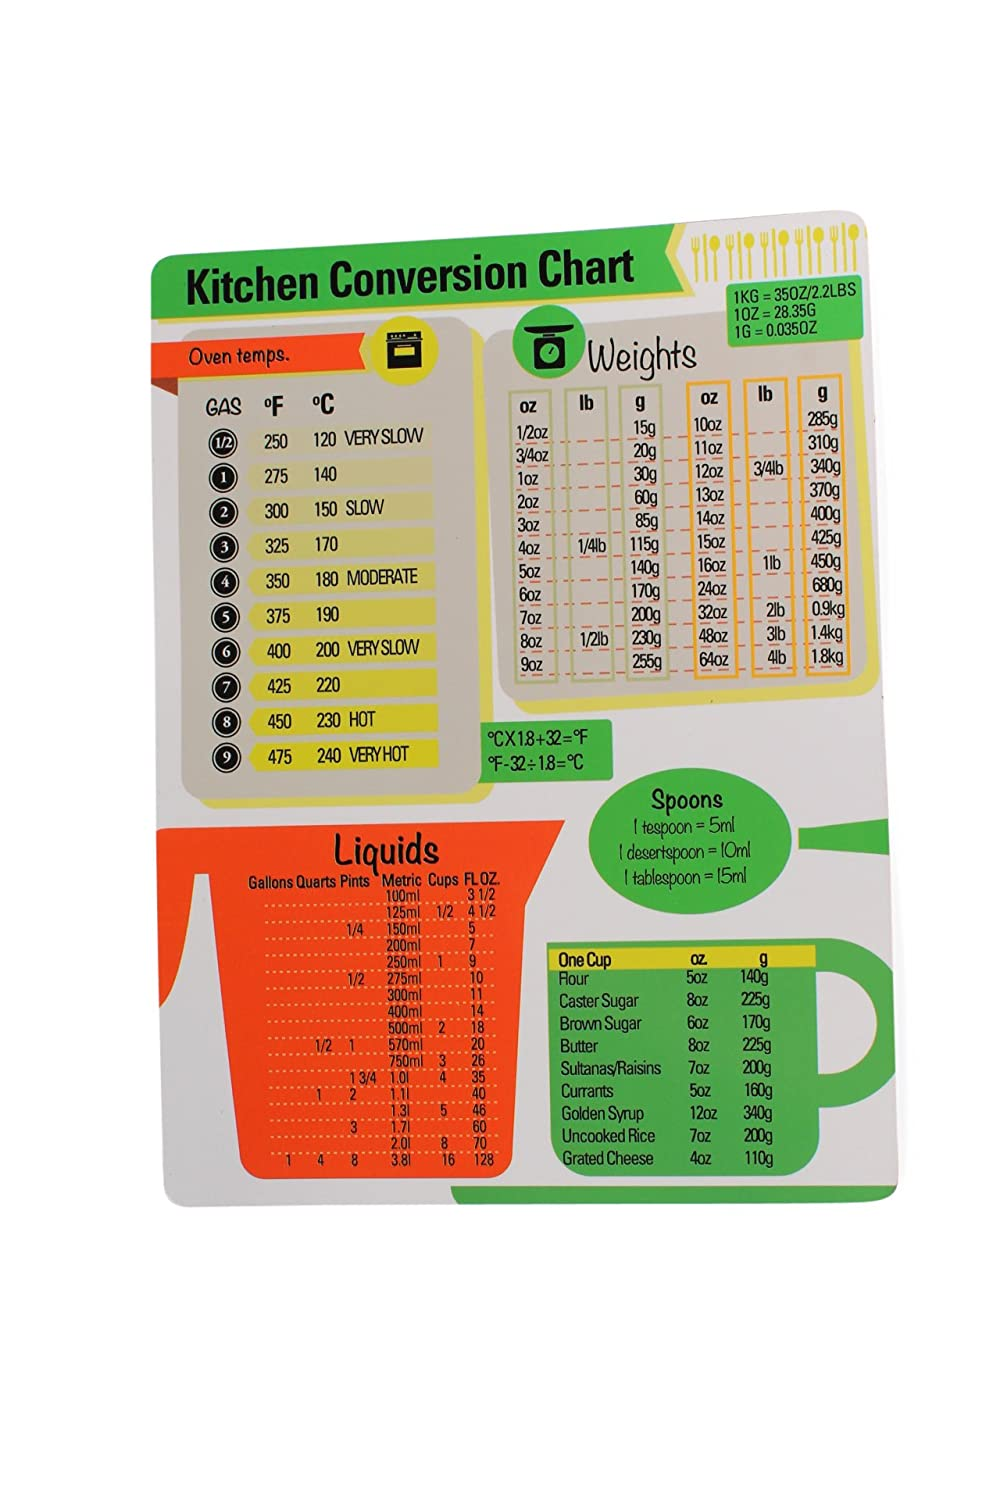 Amazon metric conversion chart fridge magnet 6 x 8 includes amazon metric conversion chart fridge magnet 6 x 8 includes weight conversion chart measurement conversion chart liquid conversion chart and nvjuhfo Images